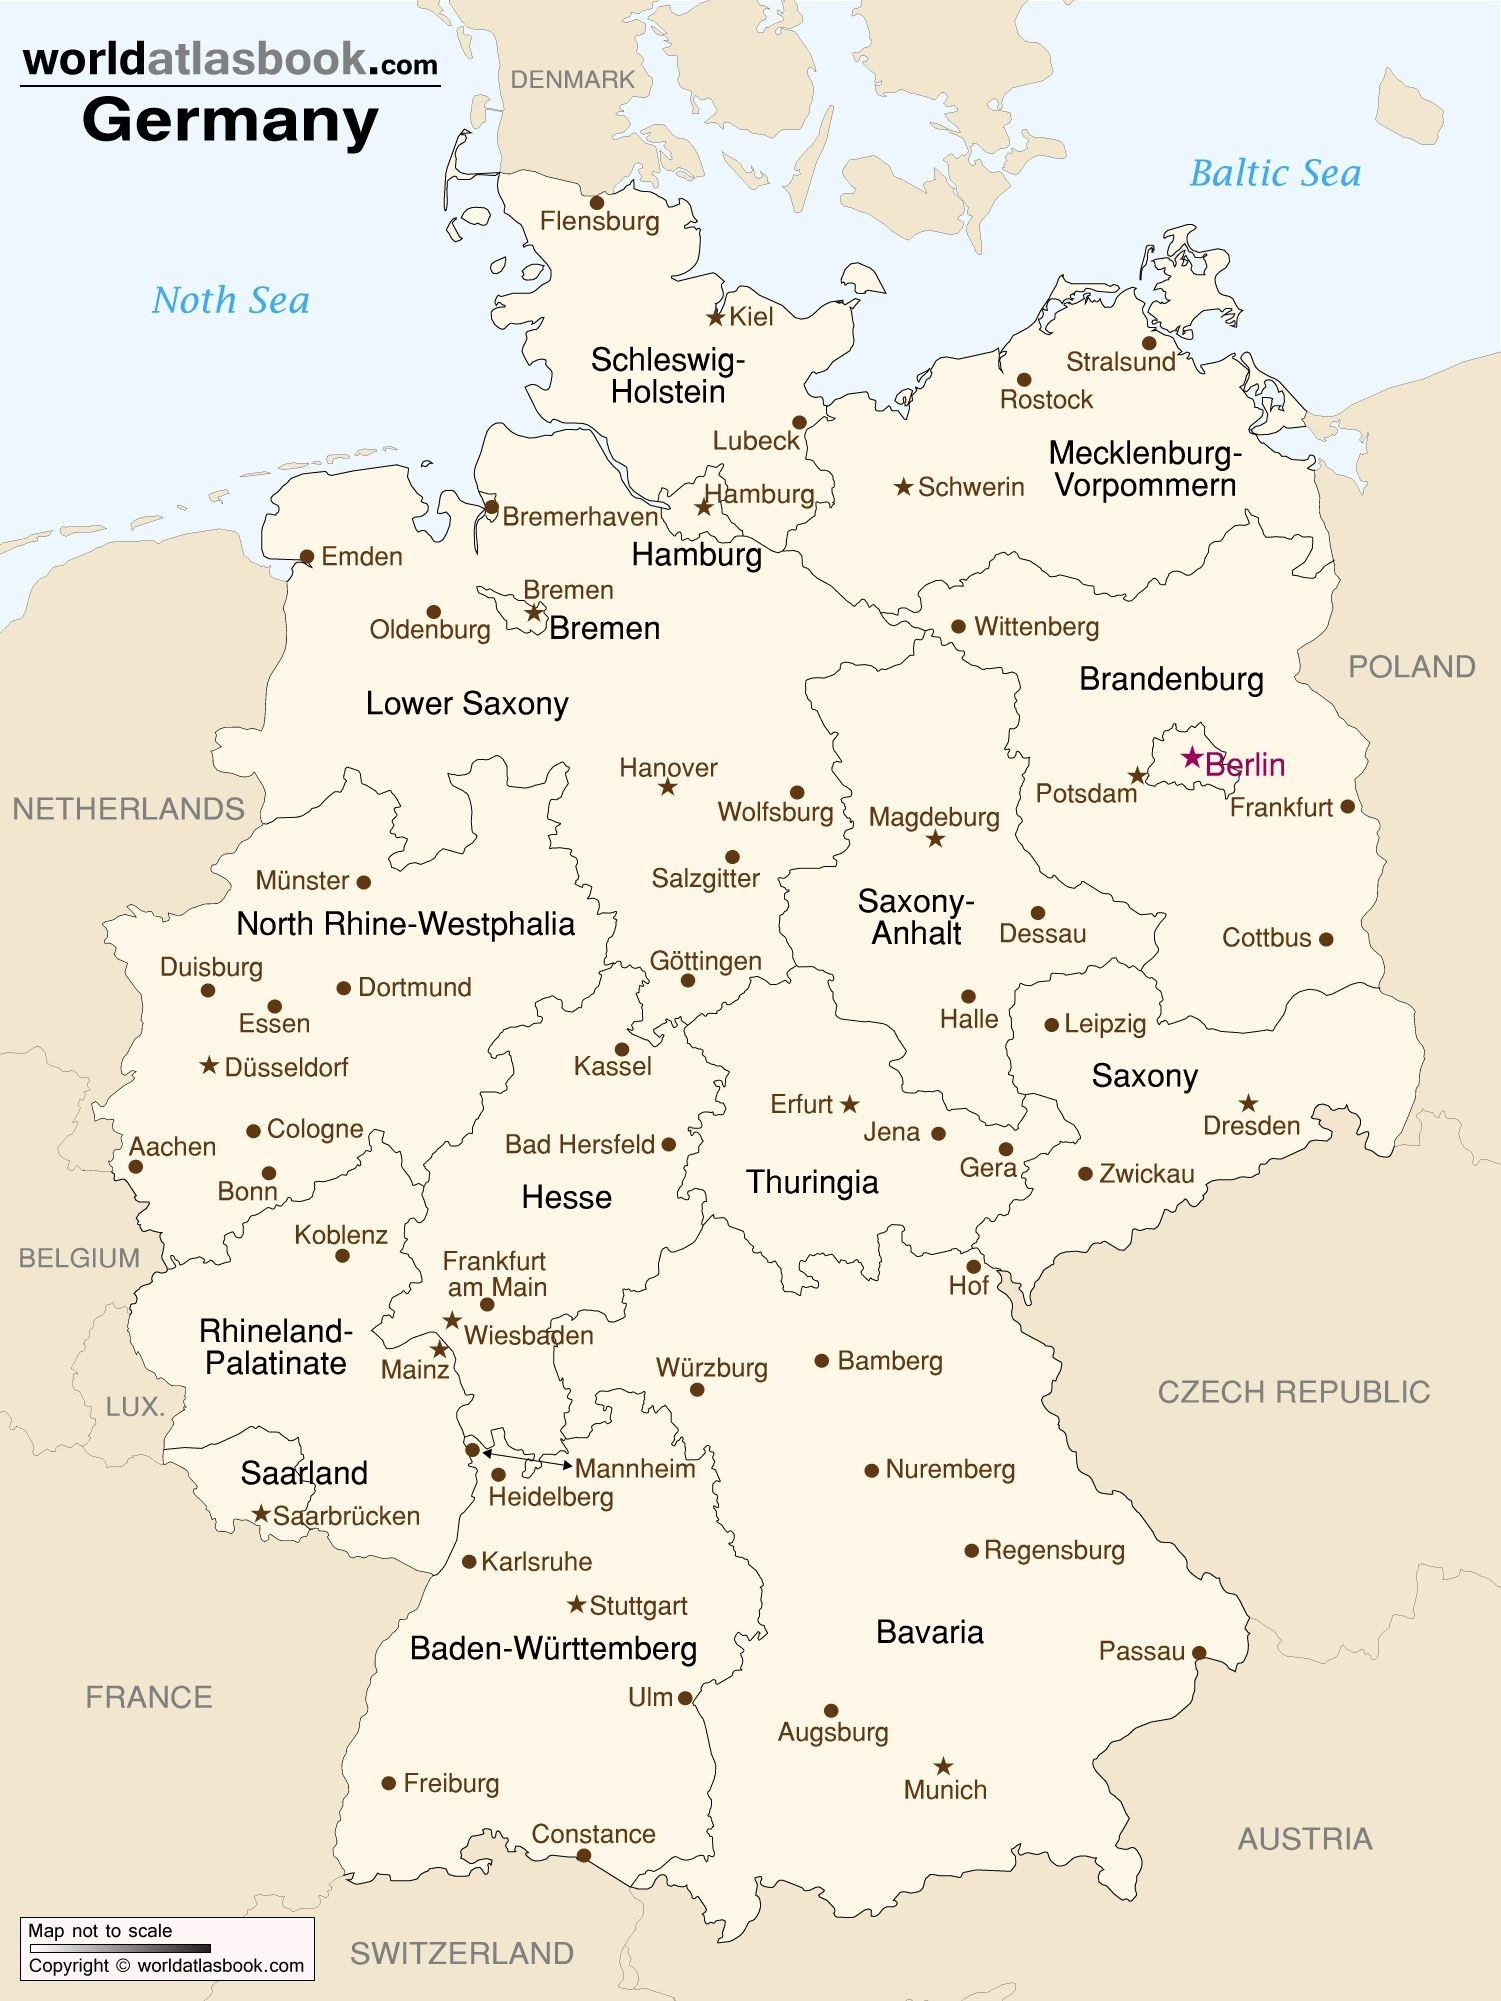 Map Of Germany With States And Cities | Germany | Map, Germany inside Germany Map States Cities